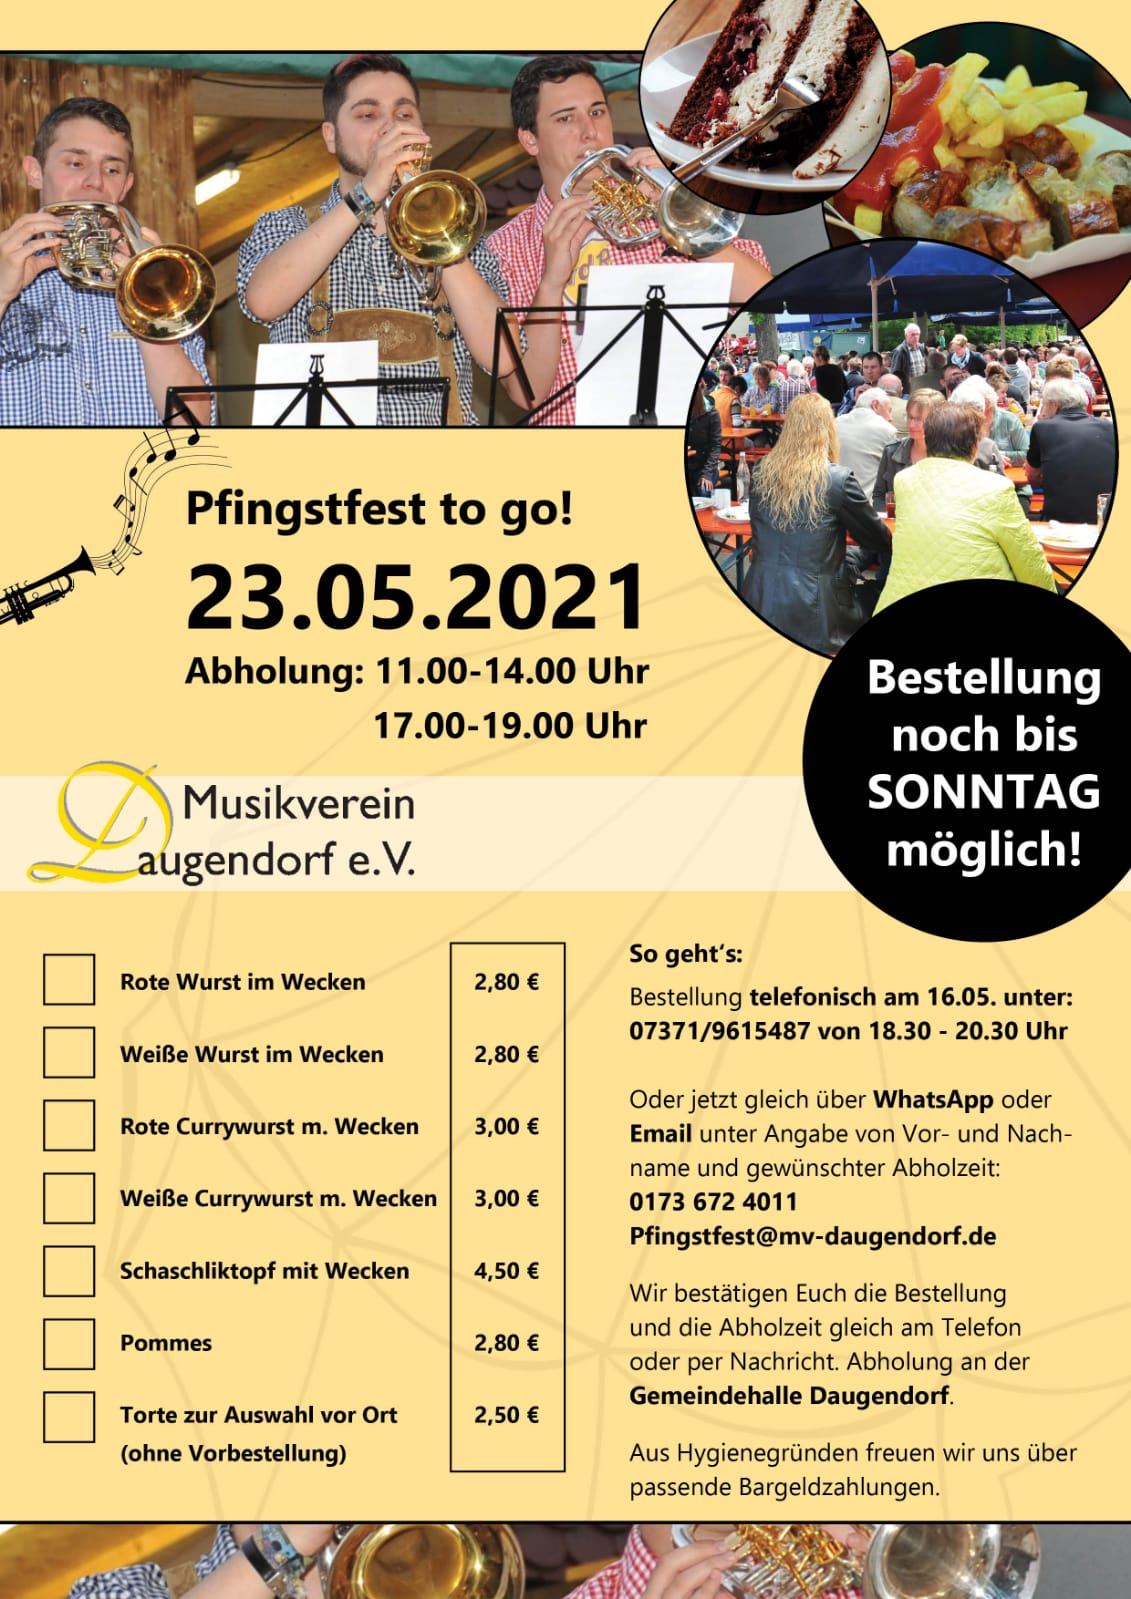 Pfingstfest to go Aktion